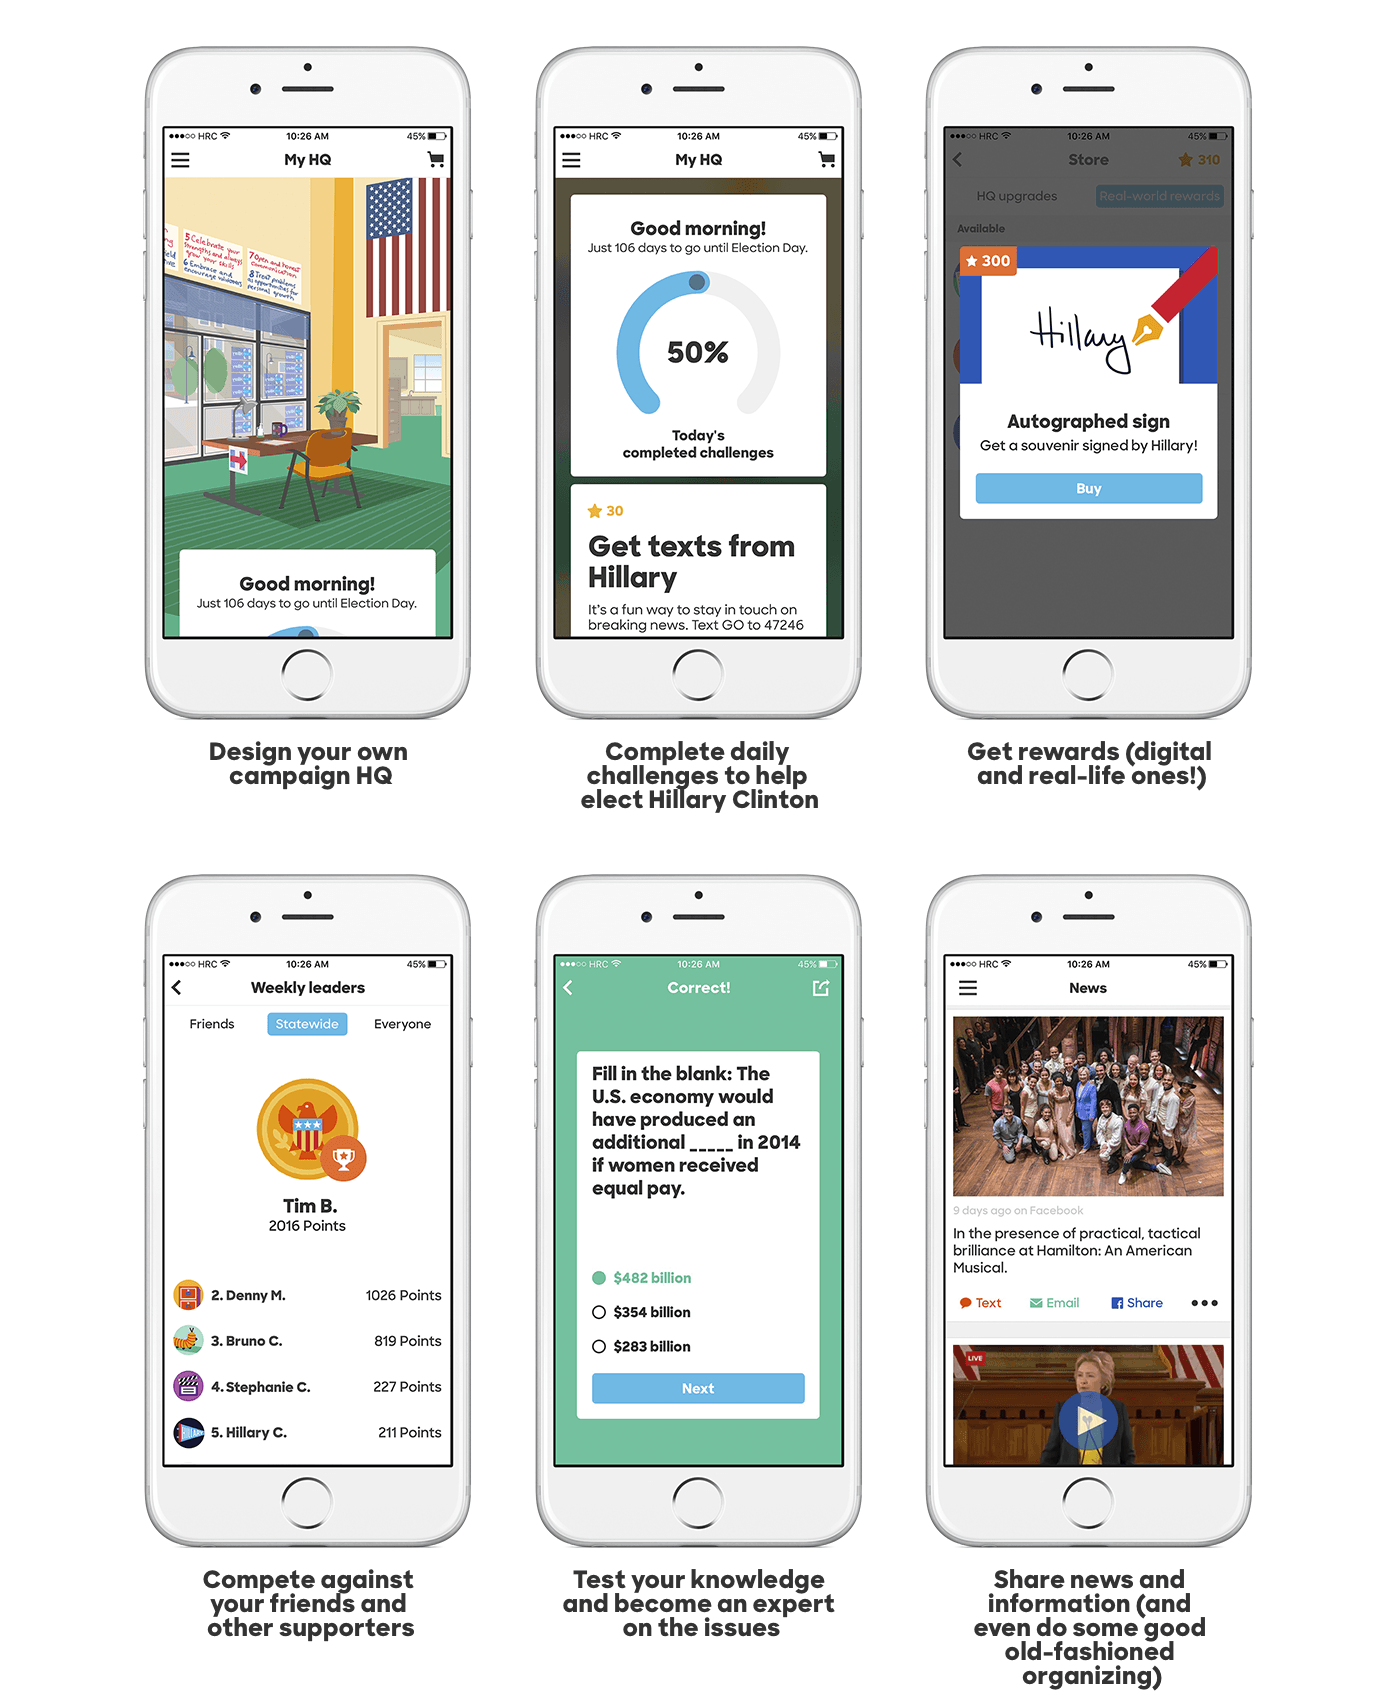 gamification-politics-hillary-campaign